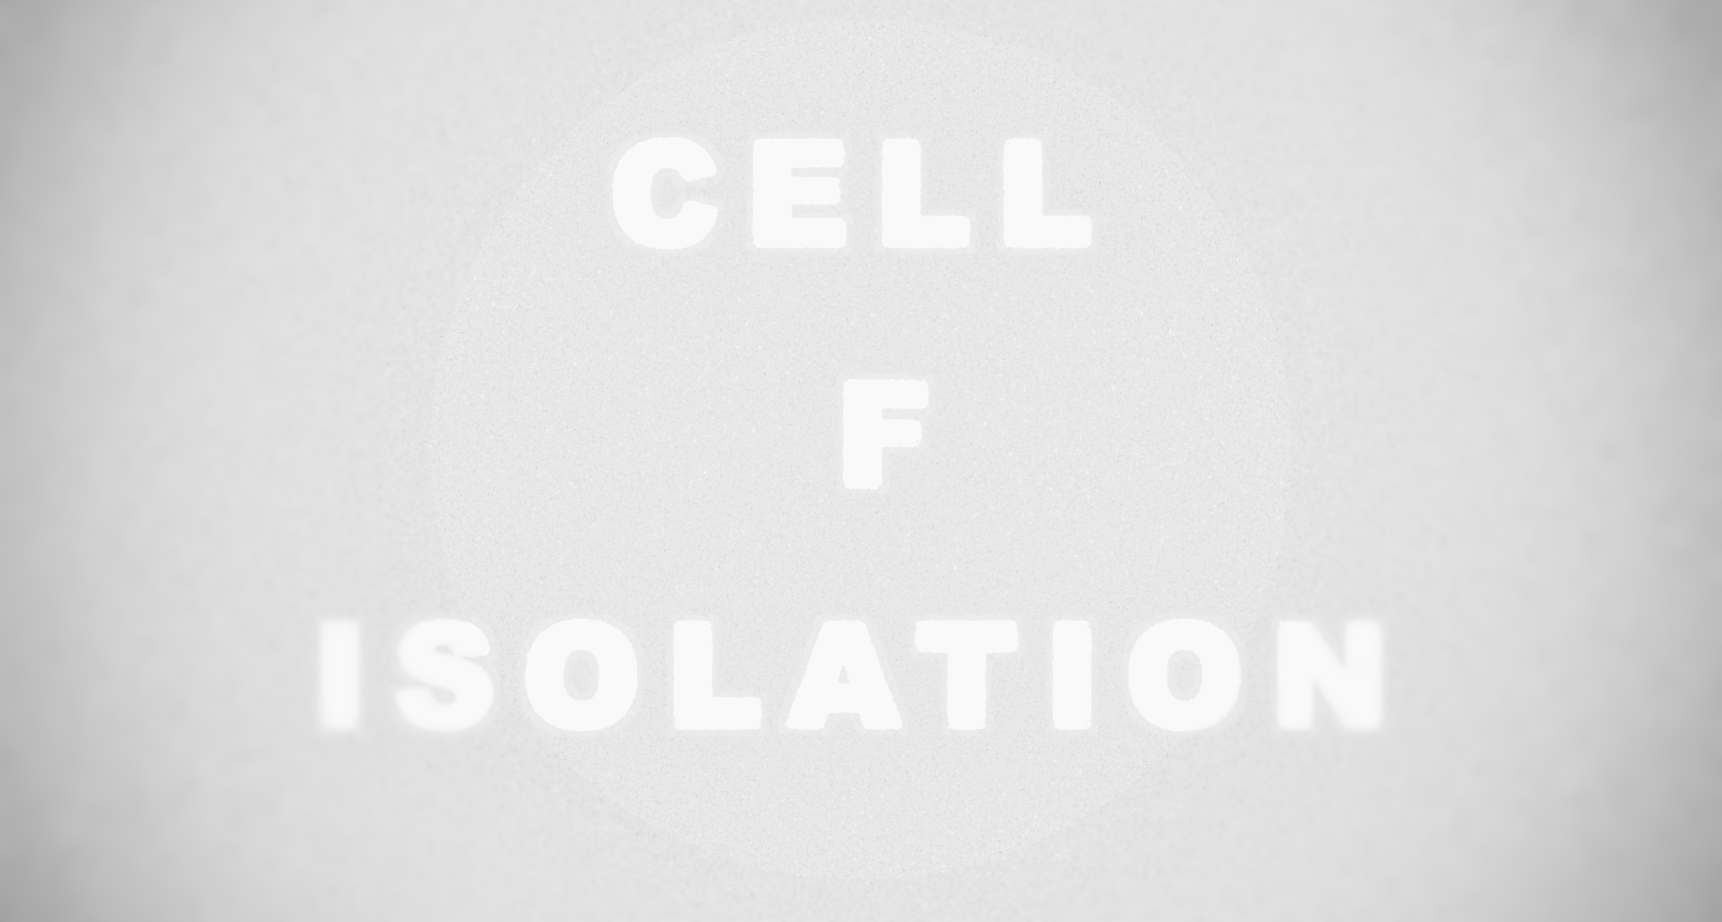 Jeremy Gluck - CELL F ISOLATION